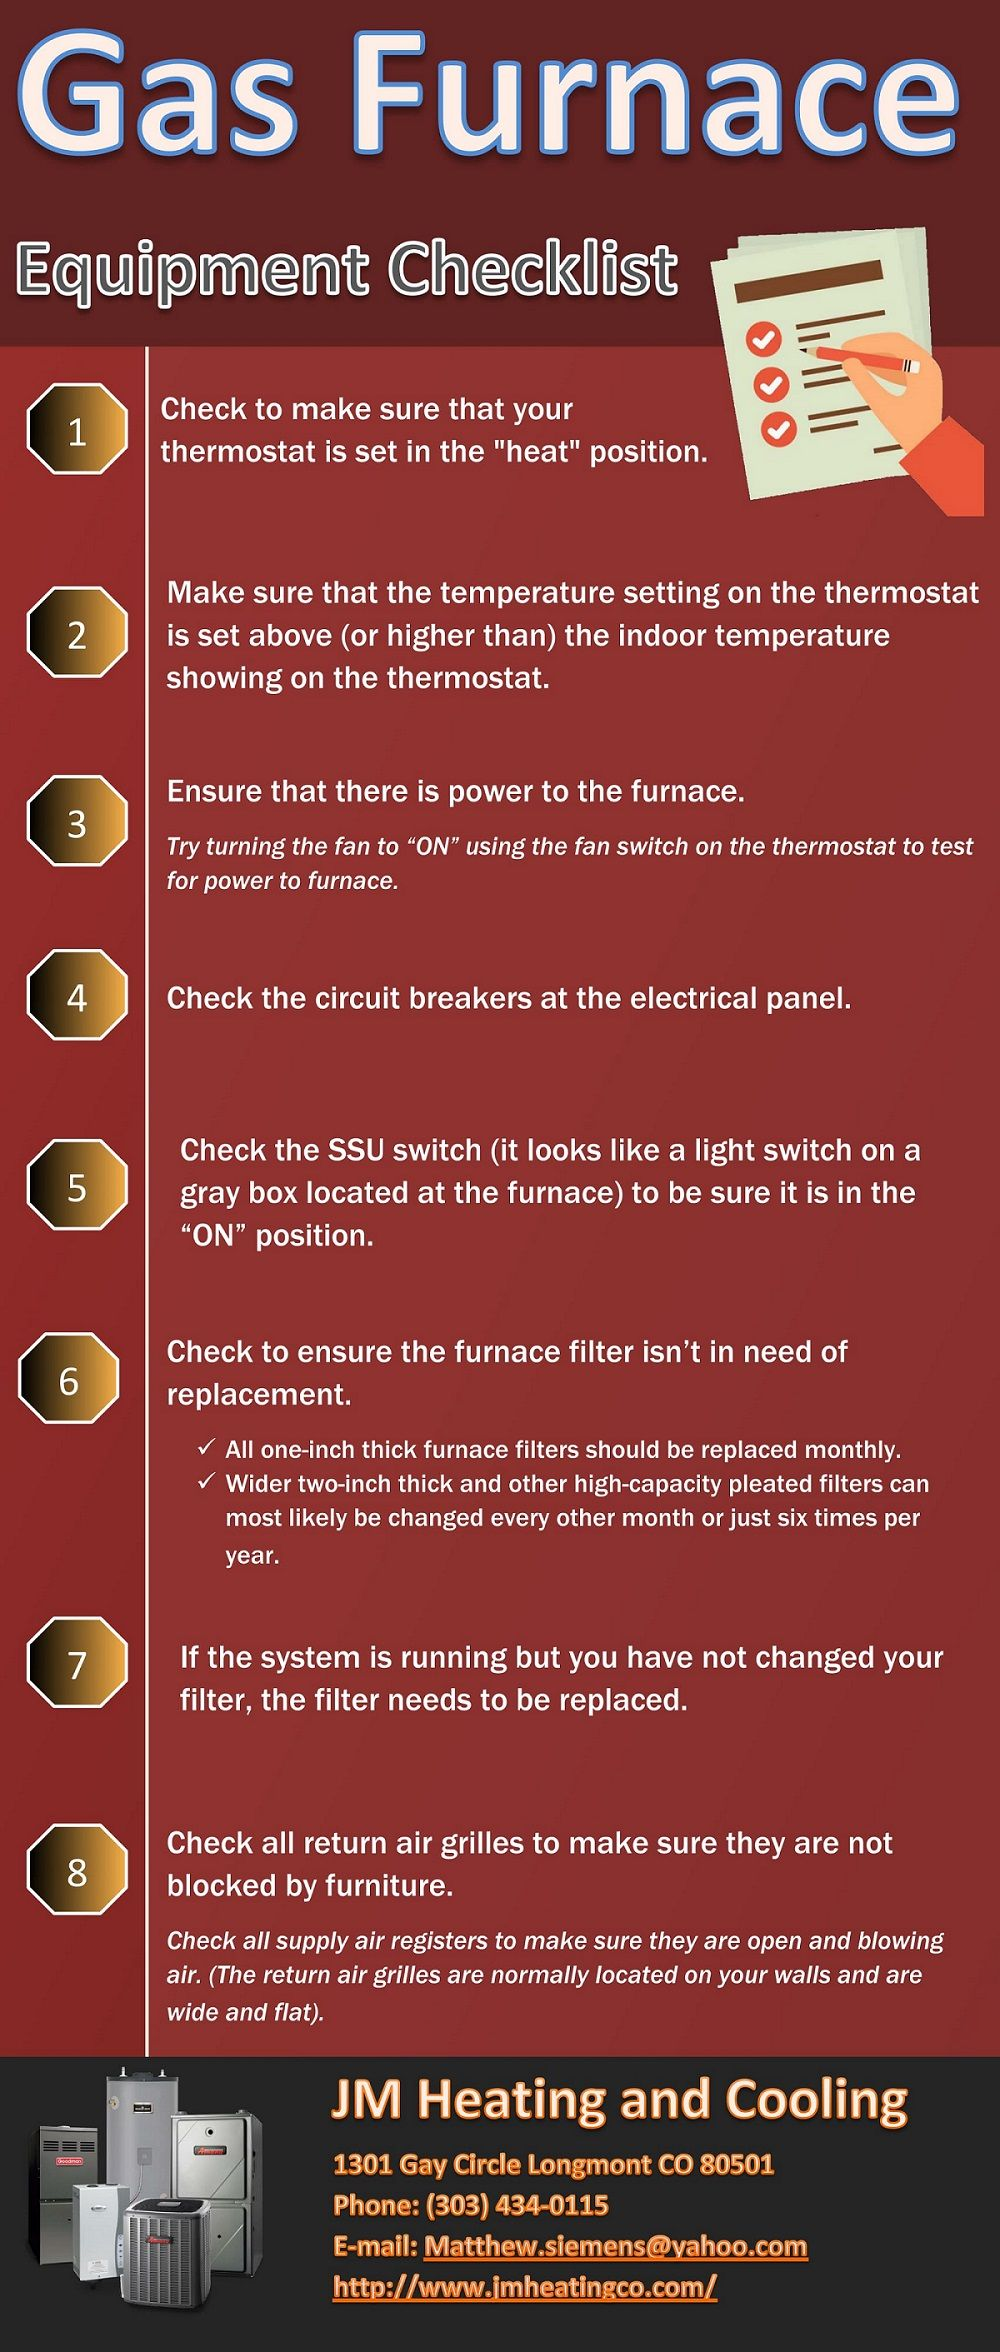 Gas Furnace Equipment Checklist home heating Furnace